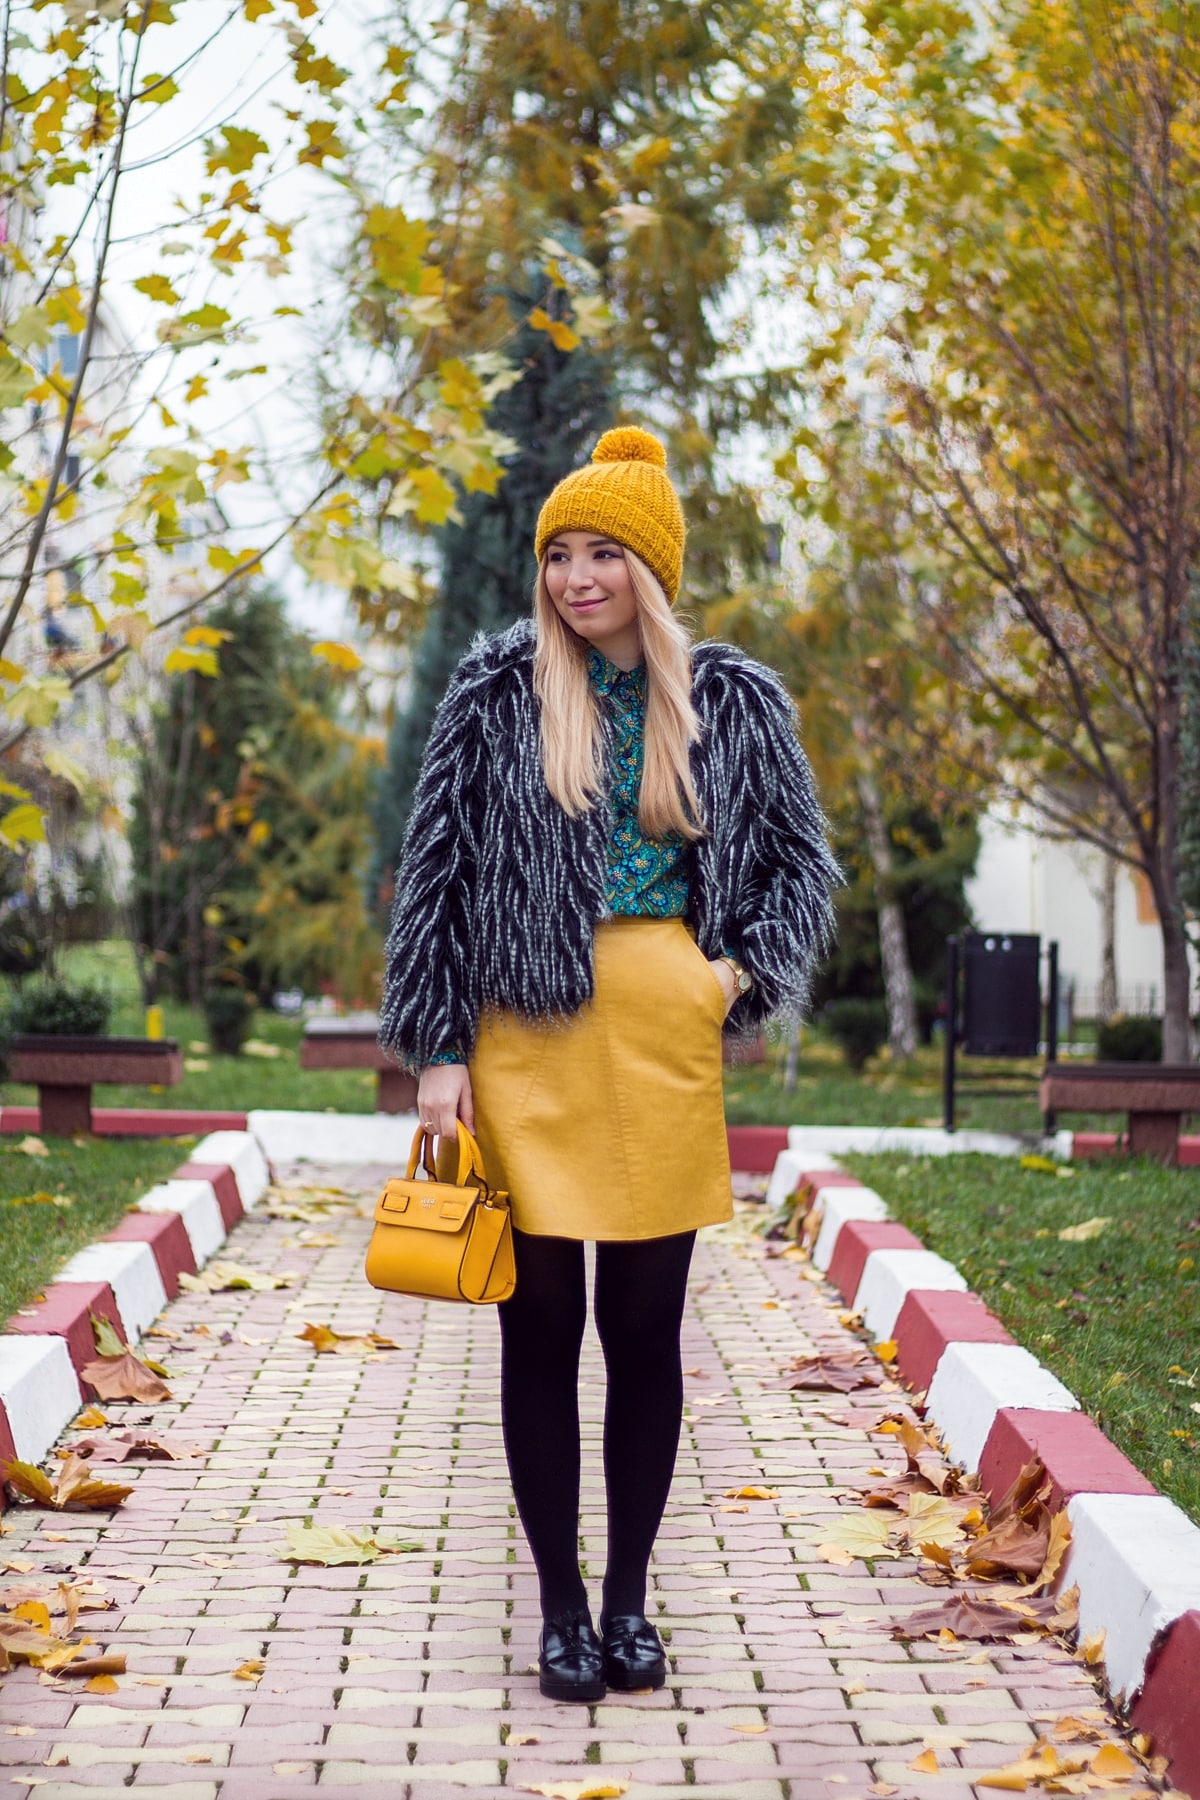 Street style: autumn, winter, outfit, yellow a line skirt, faux fur black and white, yellow bag, yellow hat, fashion blogger, andreea ristea, green shirt, ootd, outfit of the day, 2016